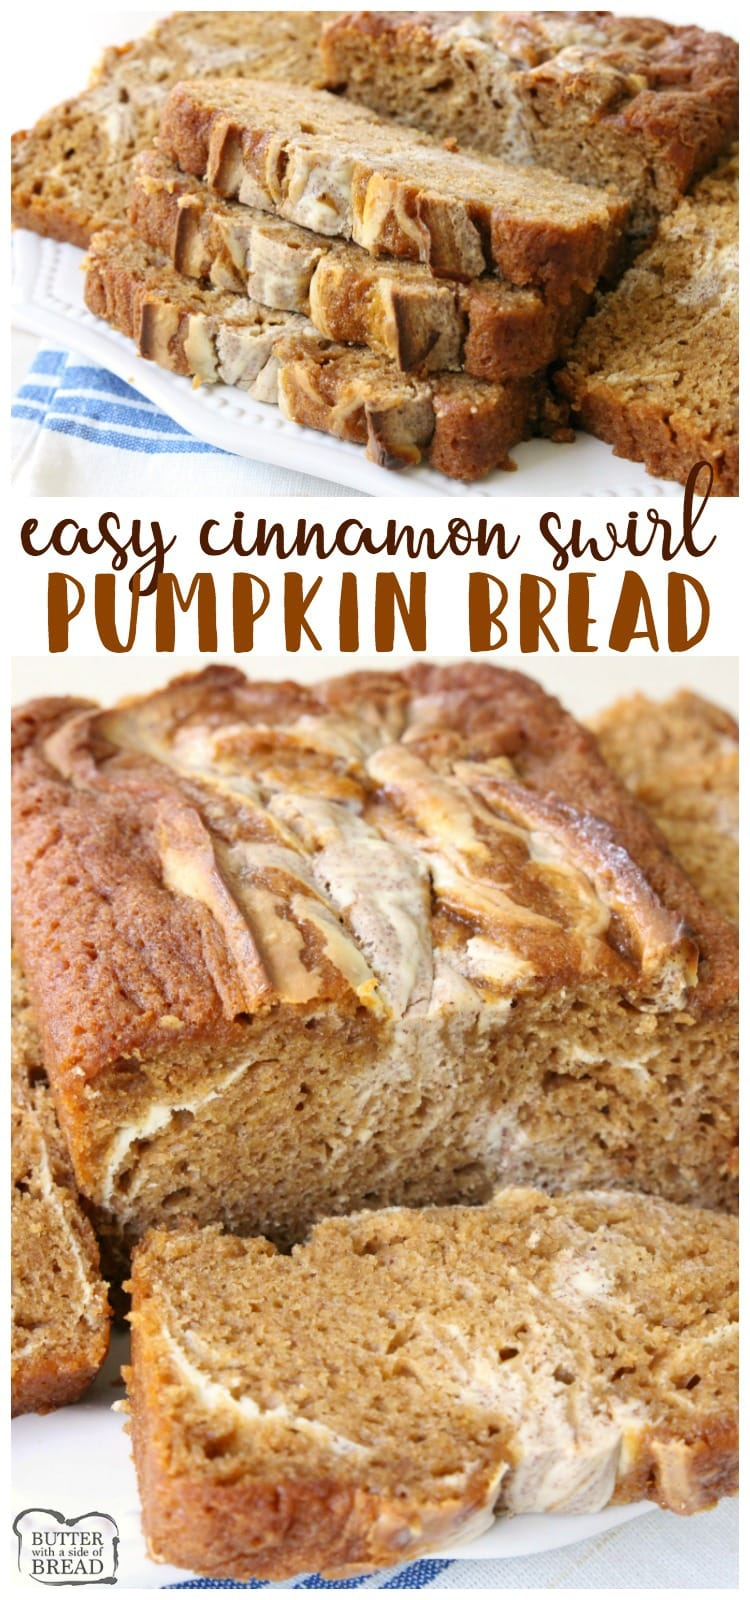 Cinnamon Swirl Pumpkin Bread is a delightful twist on a classic that incorporates sweet cream cheese and cinnamon swirled into a soft pumpkin bread. Easy #pumpkin #bread recipe from Butter With A Side of Bread